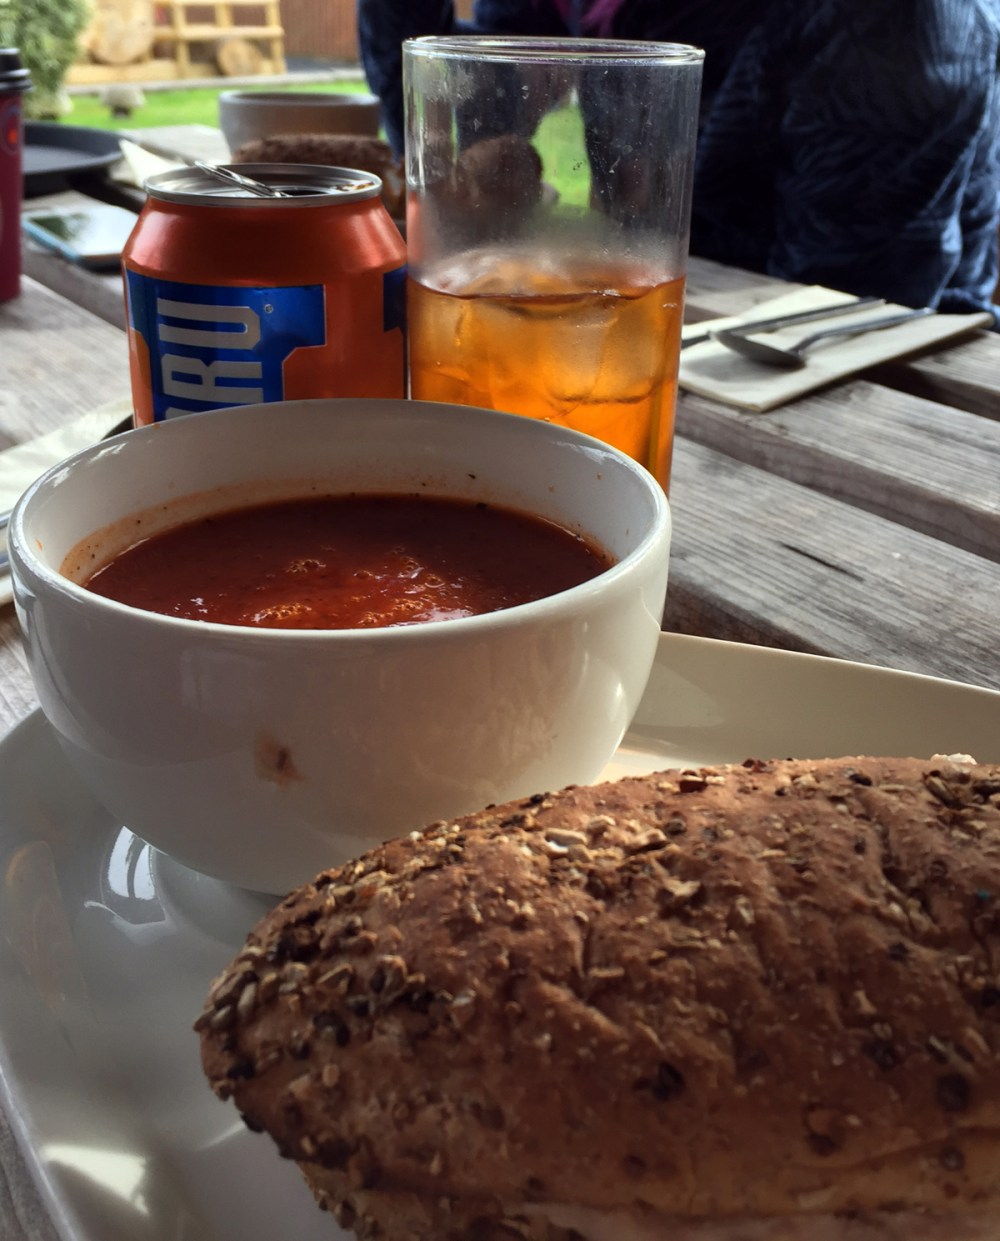 Splodz Blogz | Soup and a Sandwich at the Beech Tree Inn